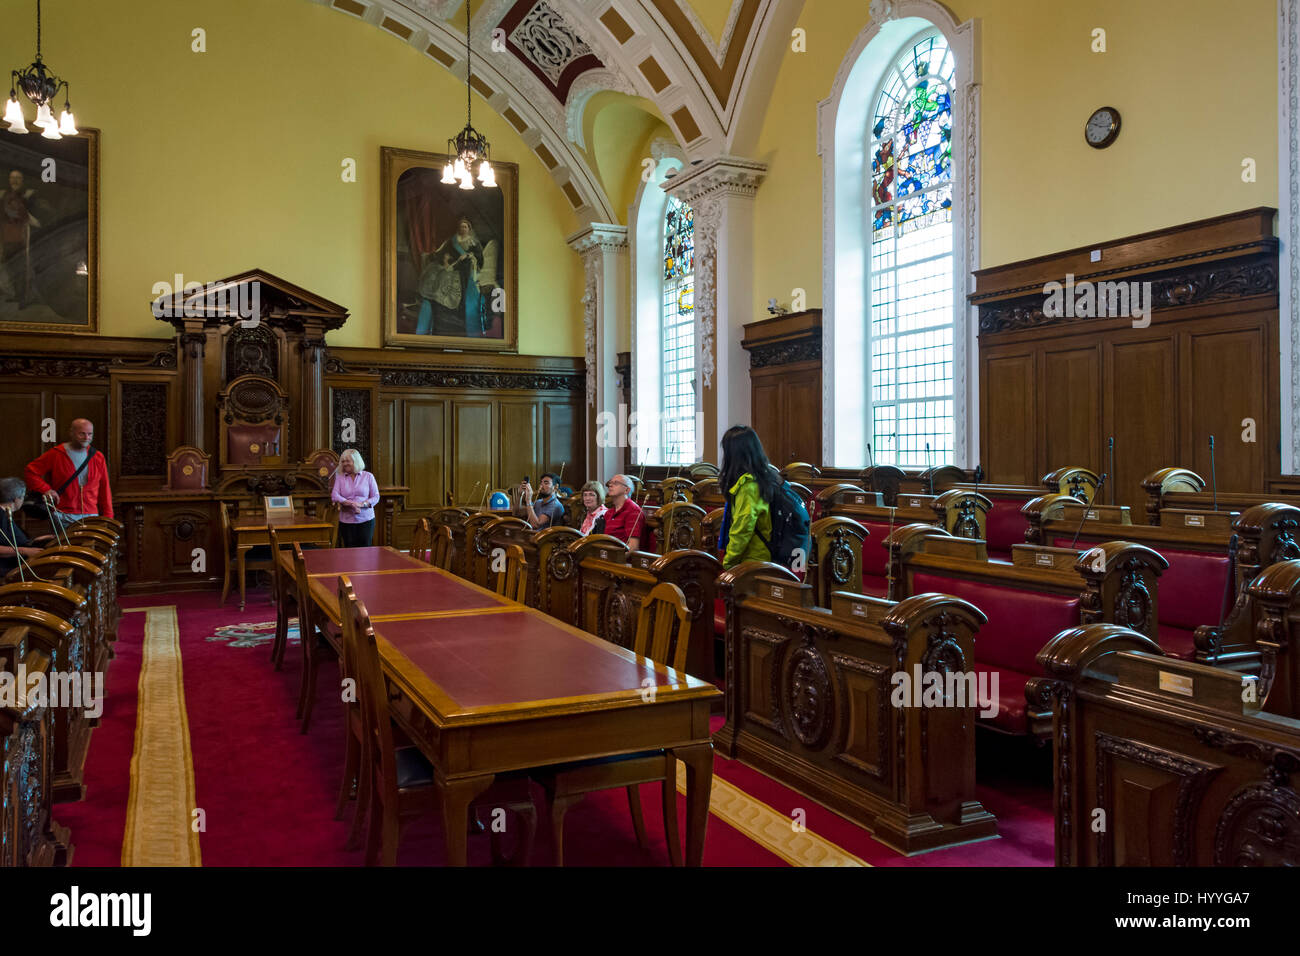 The Council Chamber, City Hall, Belfast, County Antrim, Northern Ireland, UK - Stock Image